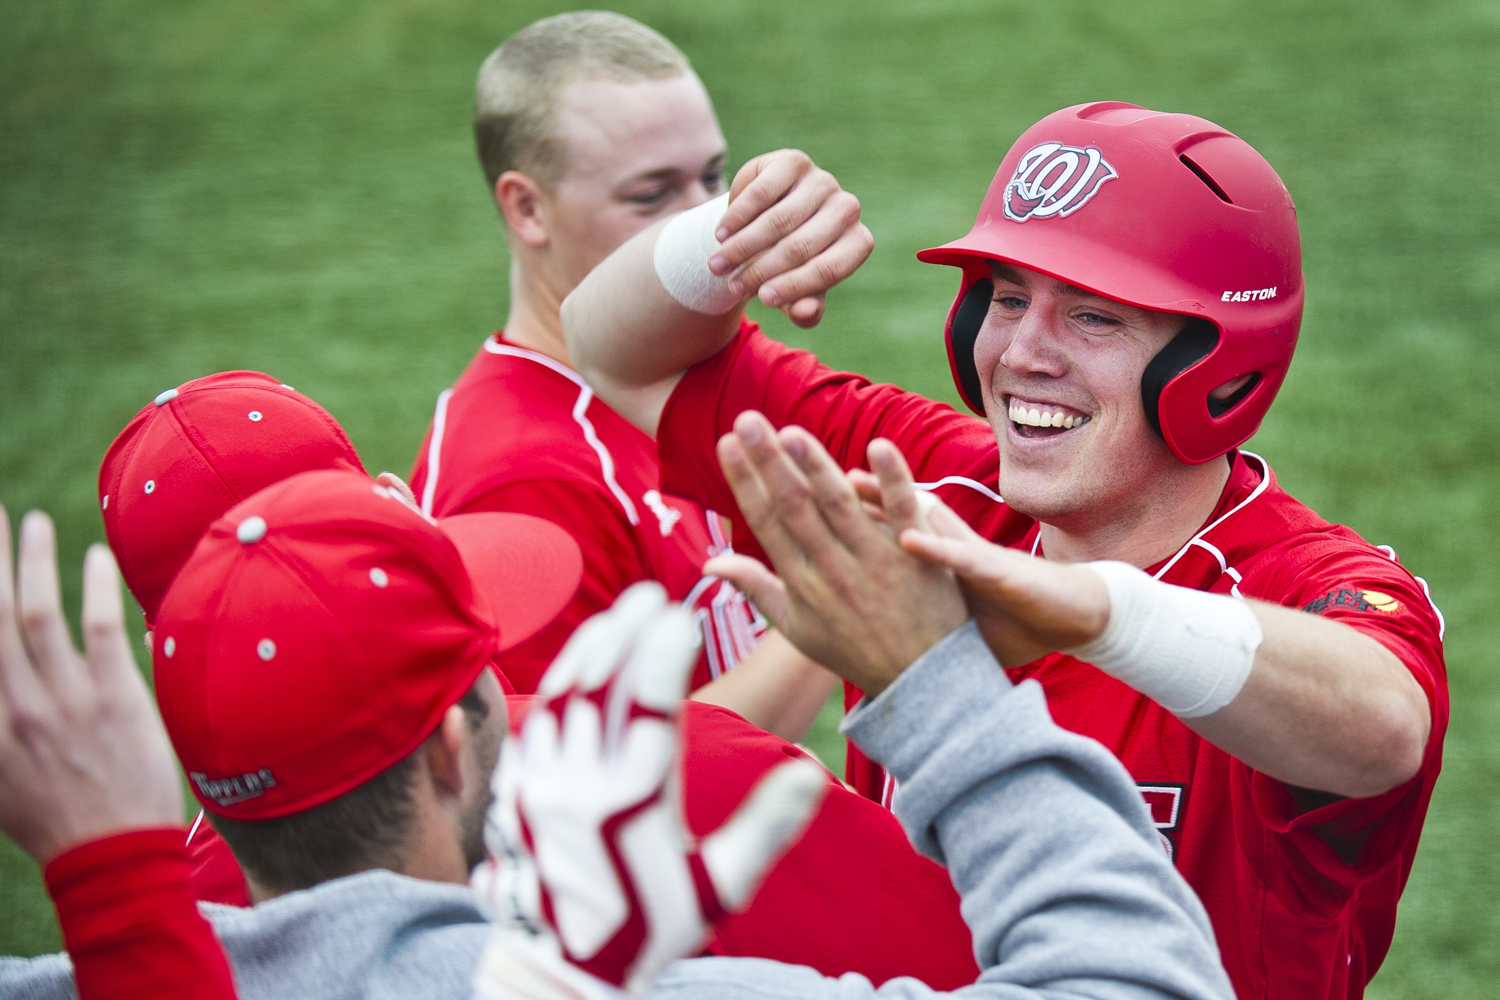 Junior+infielder+Adam+Lavelle+is+congratulated+by+his+teammates+after+scoring+a+run+against+Troy+at+Nick+Denes+Field+on+Saturday+afternoon%2C+April+21.+WKU+won+the+second+game+of+the+weekend+series+against+Troy+with+a+9-4+victory.%C2%A0%0A